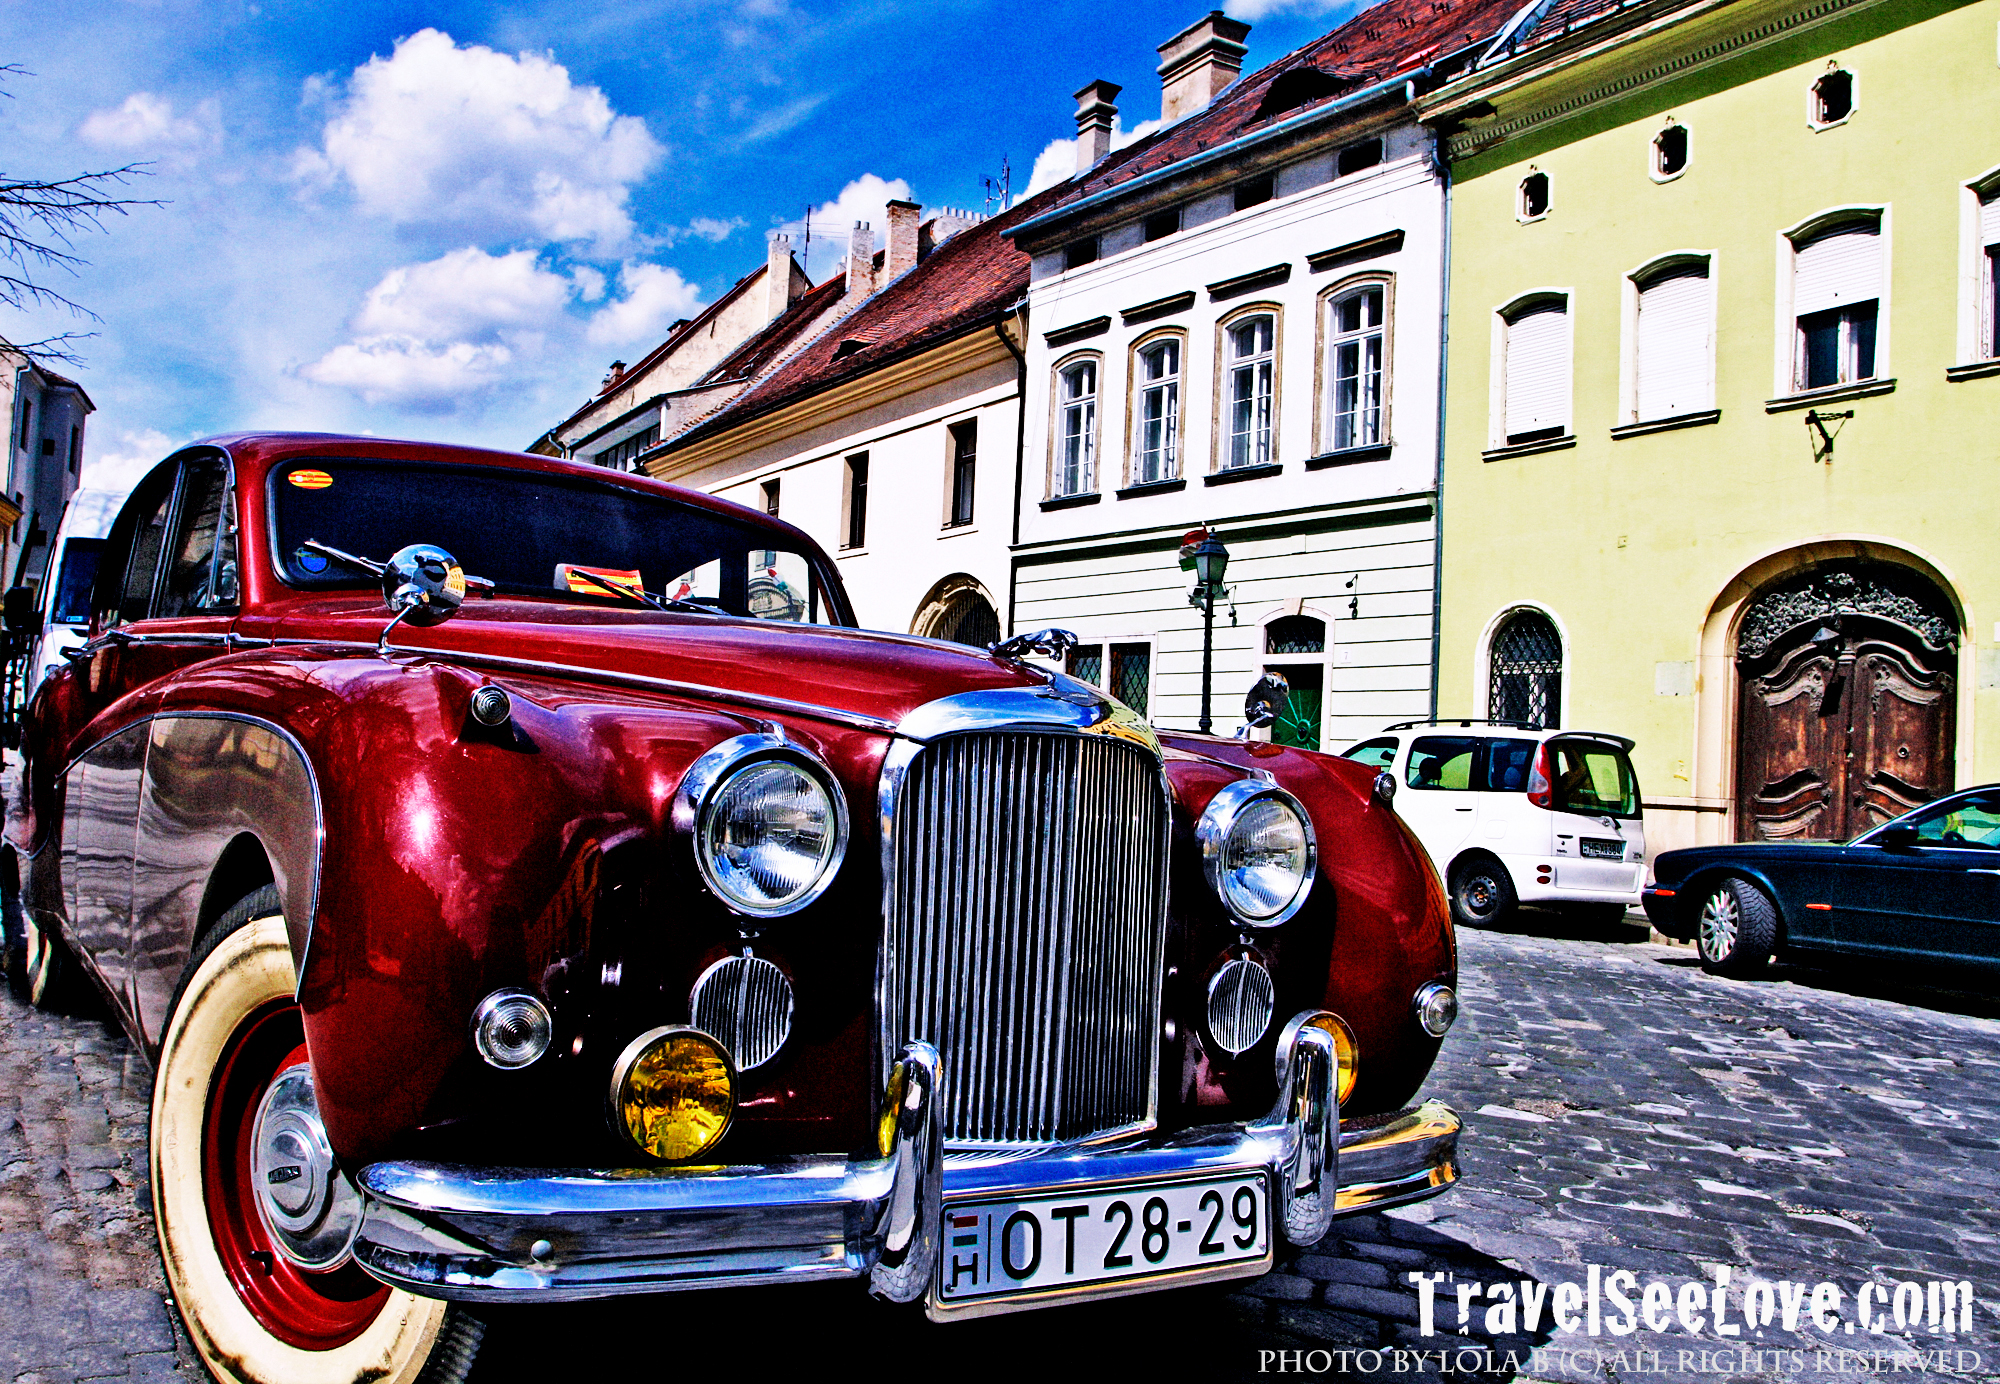 Loved seeing the classic cars on the Buda side